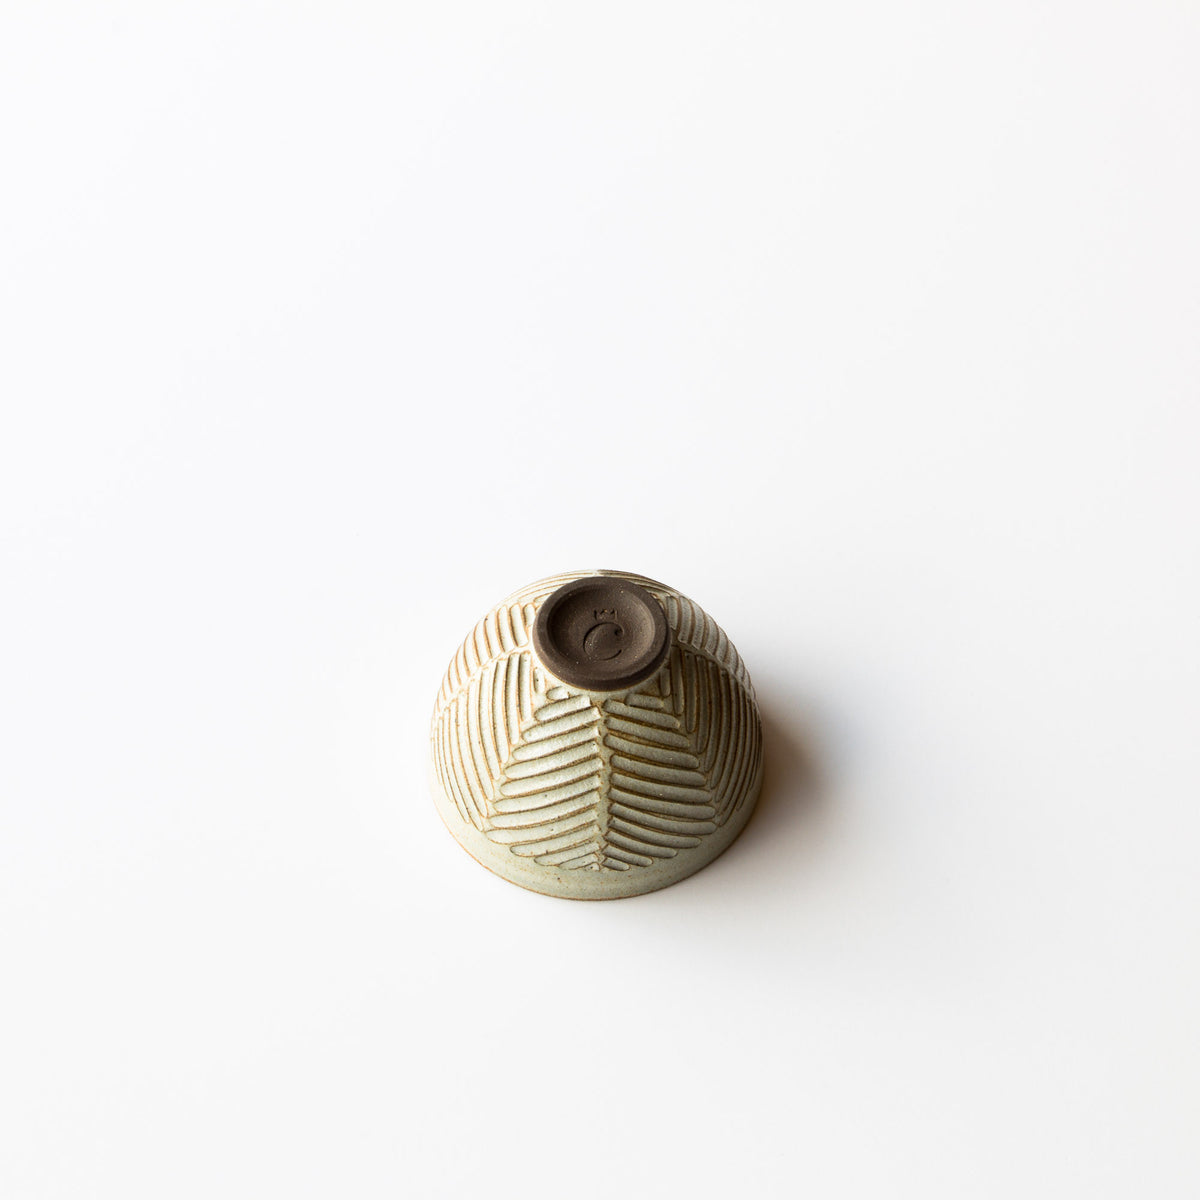 Bottom View - Greige Colour - Hand Thrown Ceramic - Herringbone Pattern Tea Bowl - Made in Canada